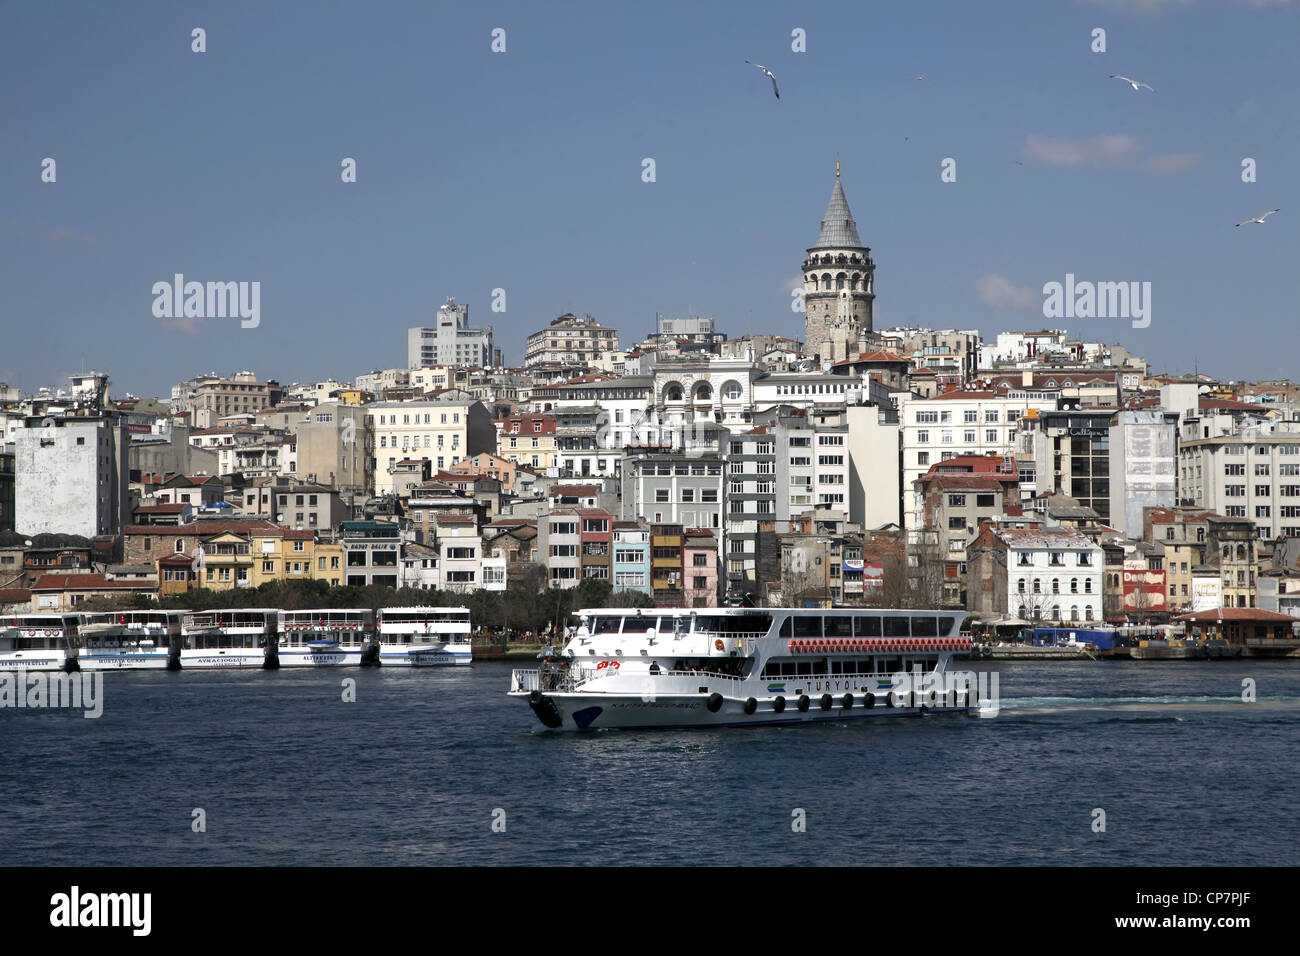 FERRY GALATA TOWER & BEYOGLU BEYOGLU ISTANBUL TURKEY 27 March 2012 - Stock Image